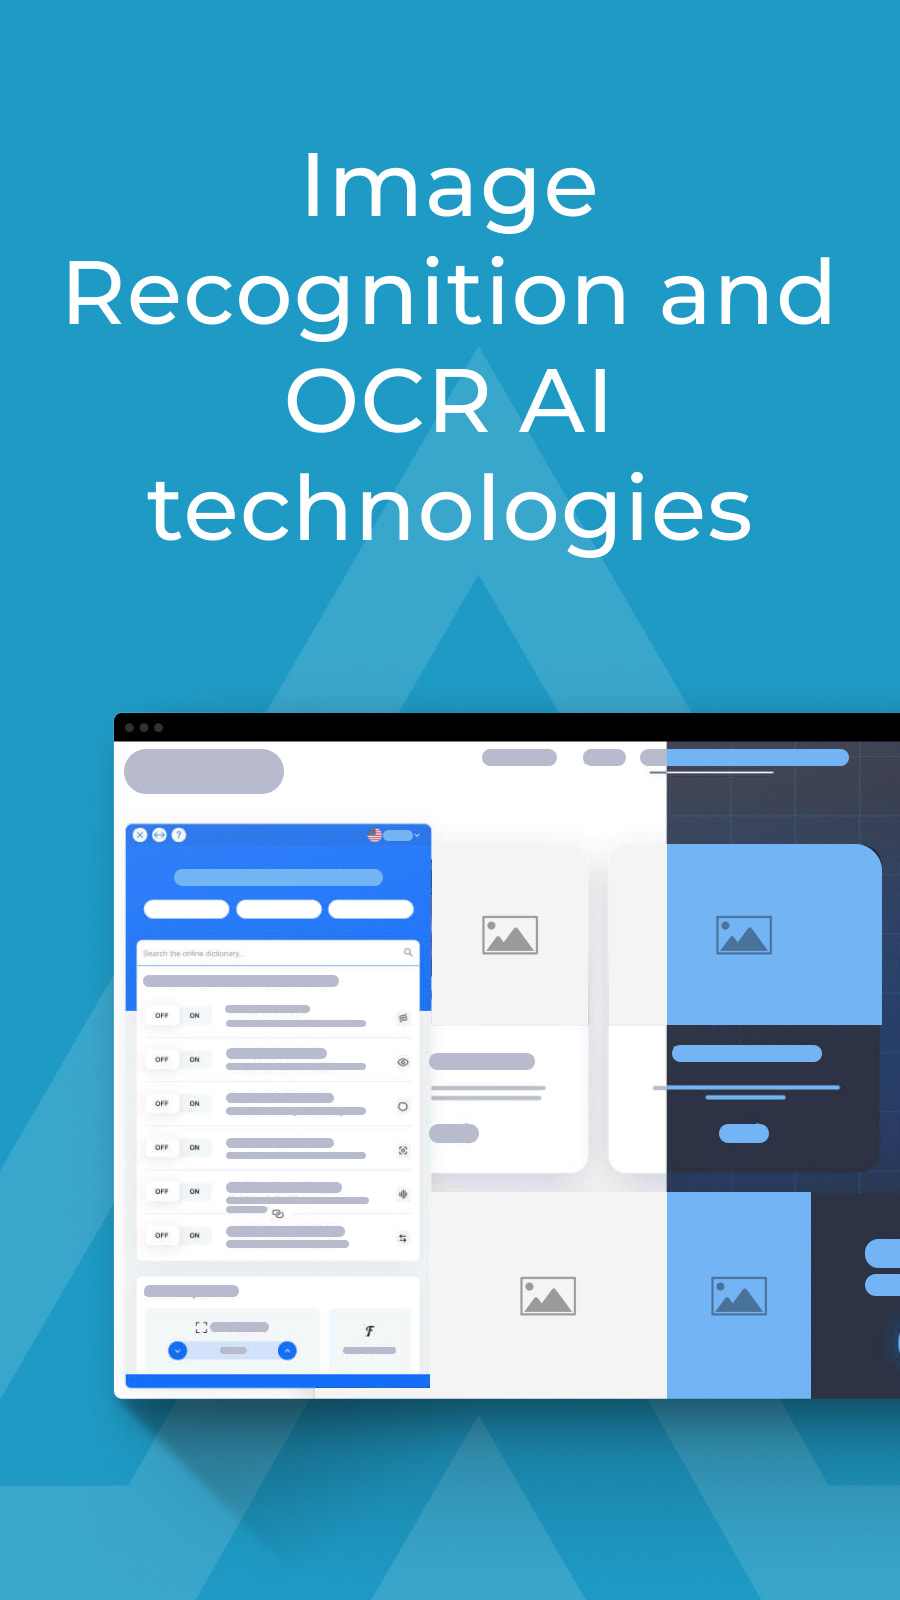 Image Recognition and OCR AI technologies